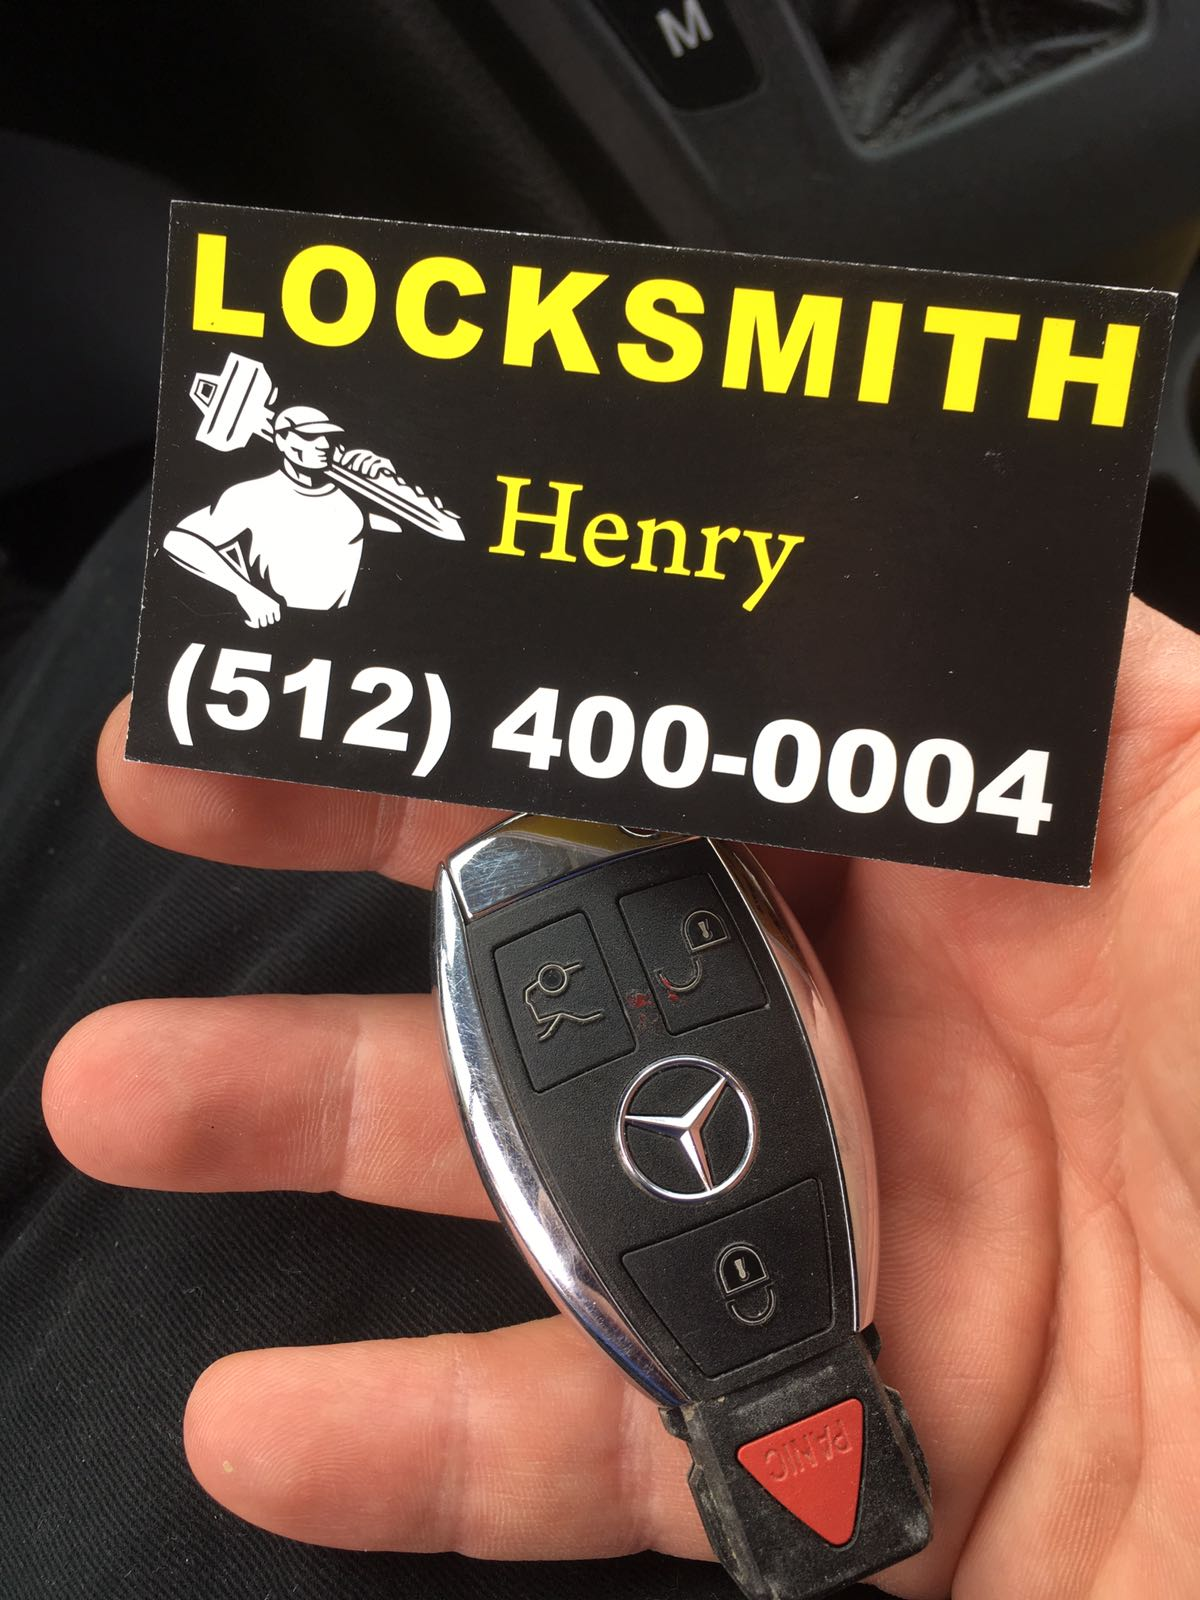 Why We Need Locksmith Services In Austin TX?